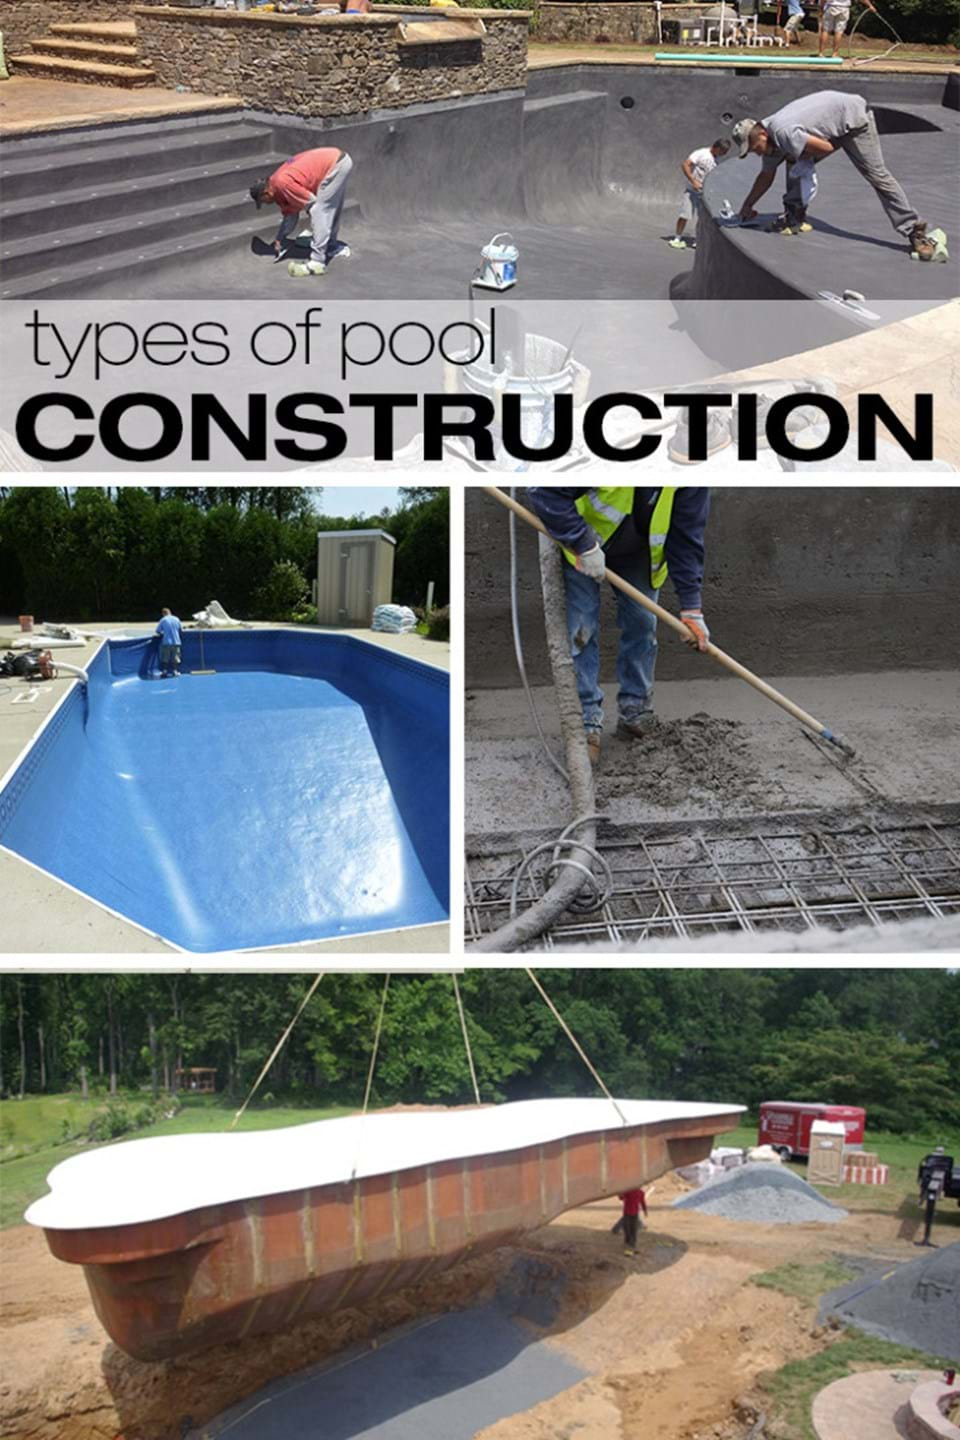 Types of inground swimming pools s r smith blog for Types of inground swimming pools